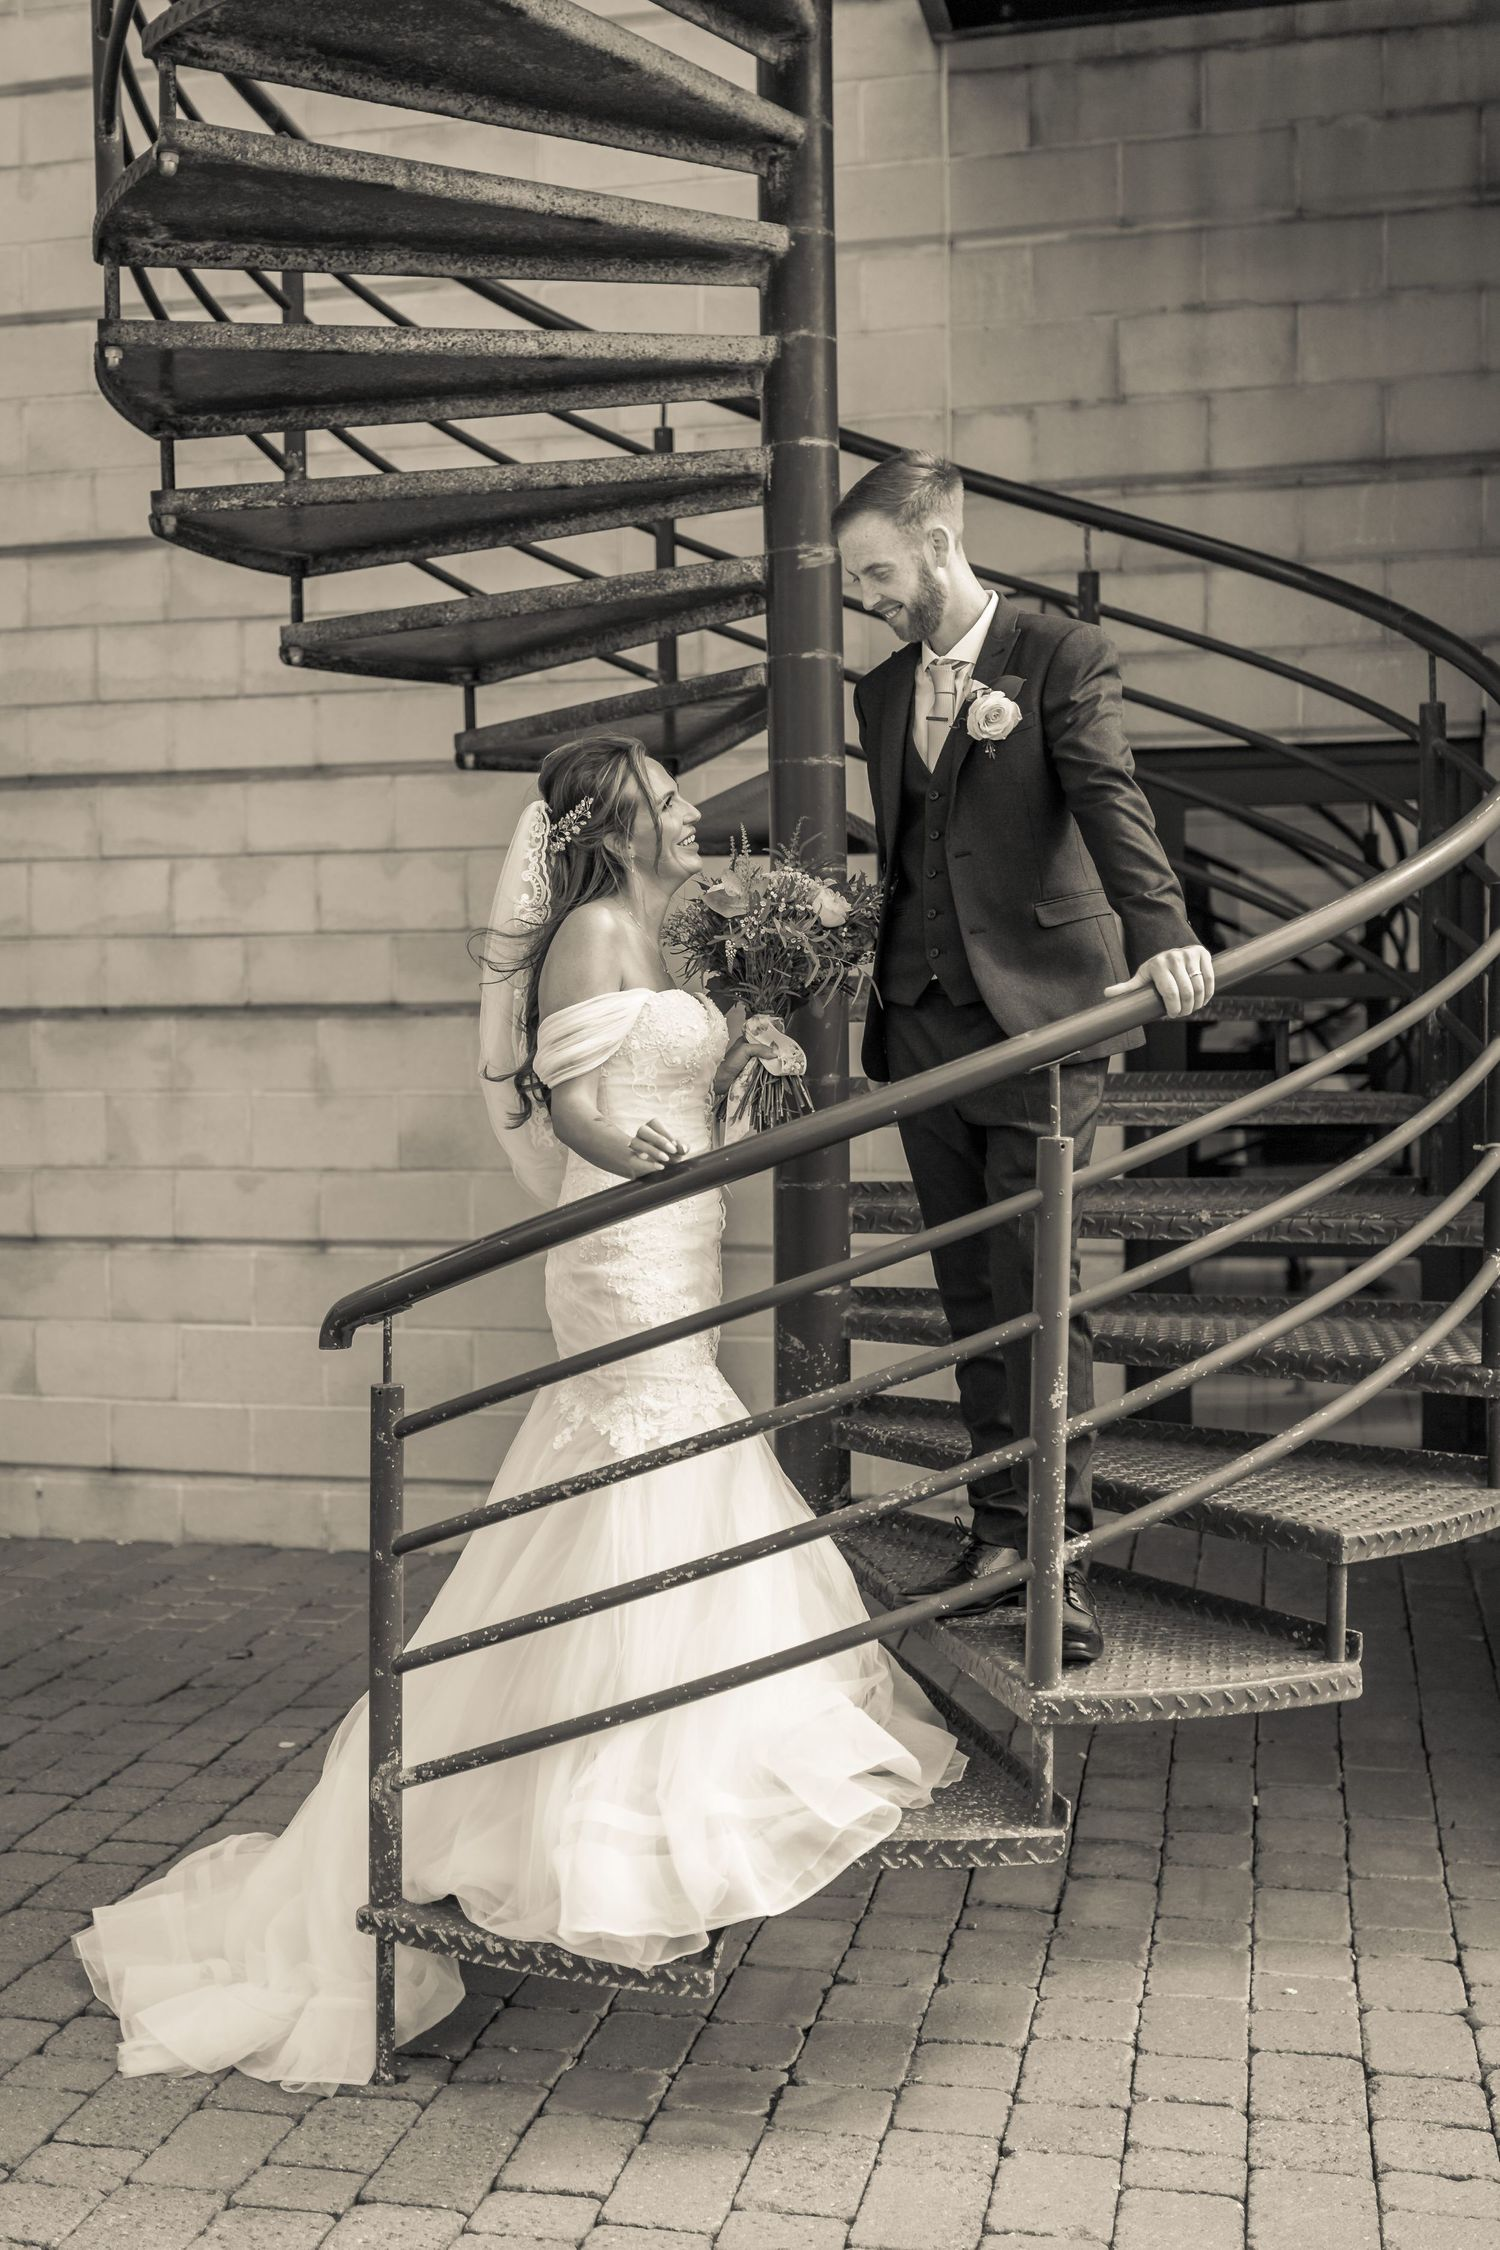 bride and groom looking at each other and smiling while posing on an industrial metal spiral straicase